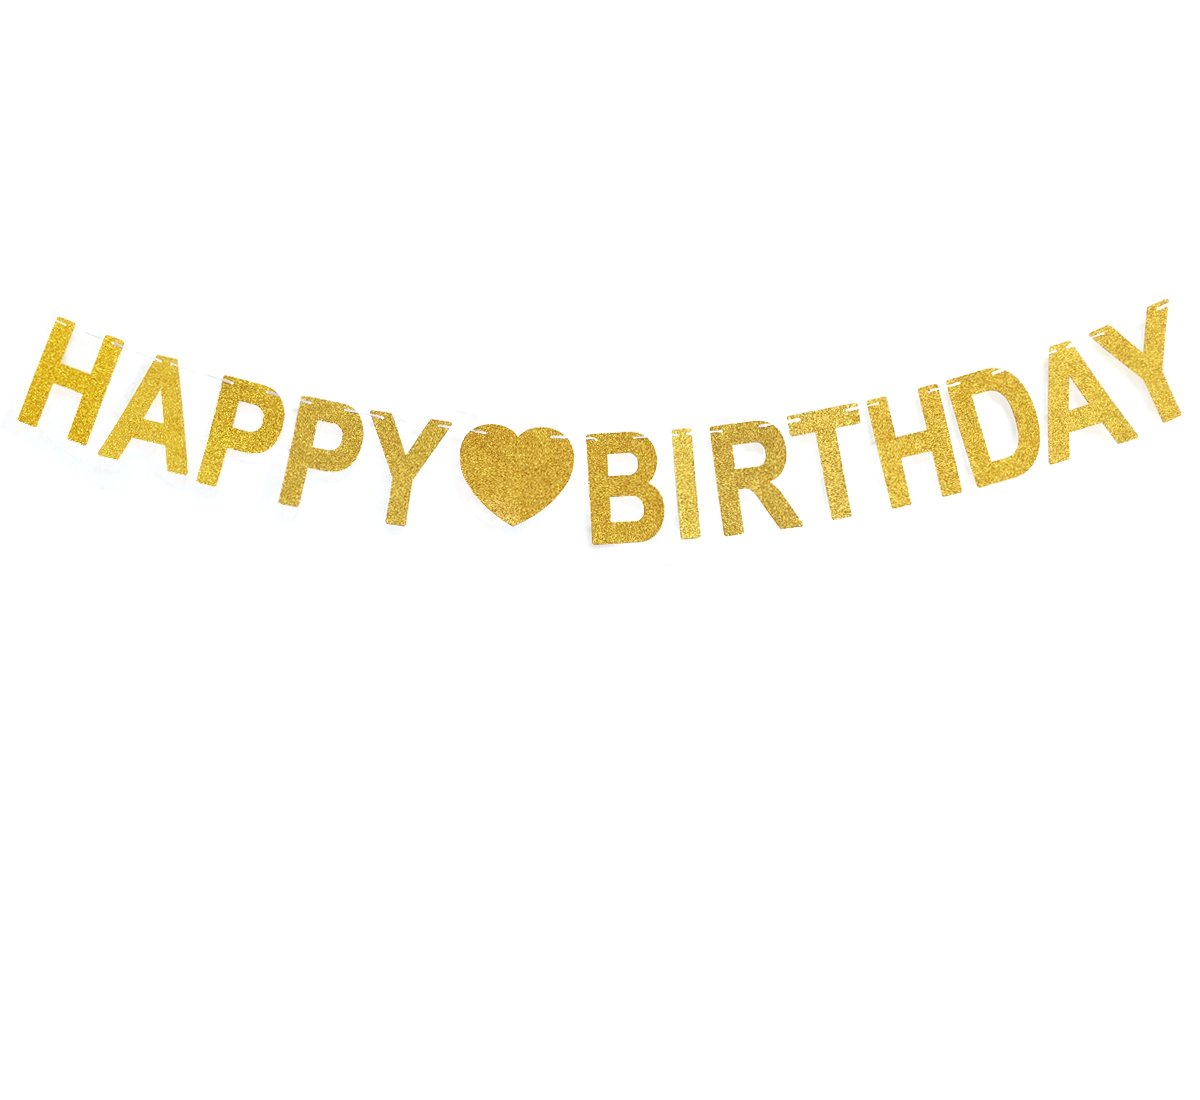 Andgo Happy Birthday Bunting Banner Sign Gold Glitter Banner For Birthday Party Decoration